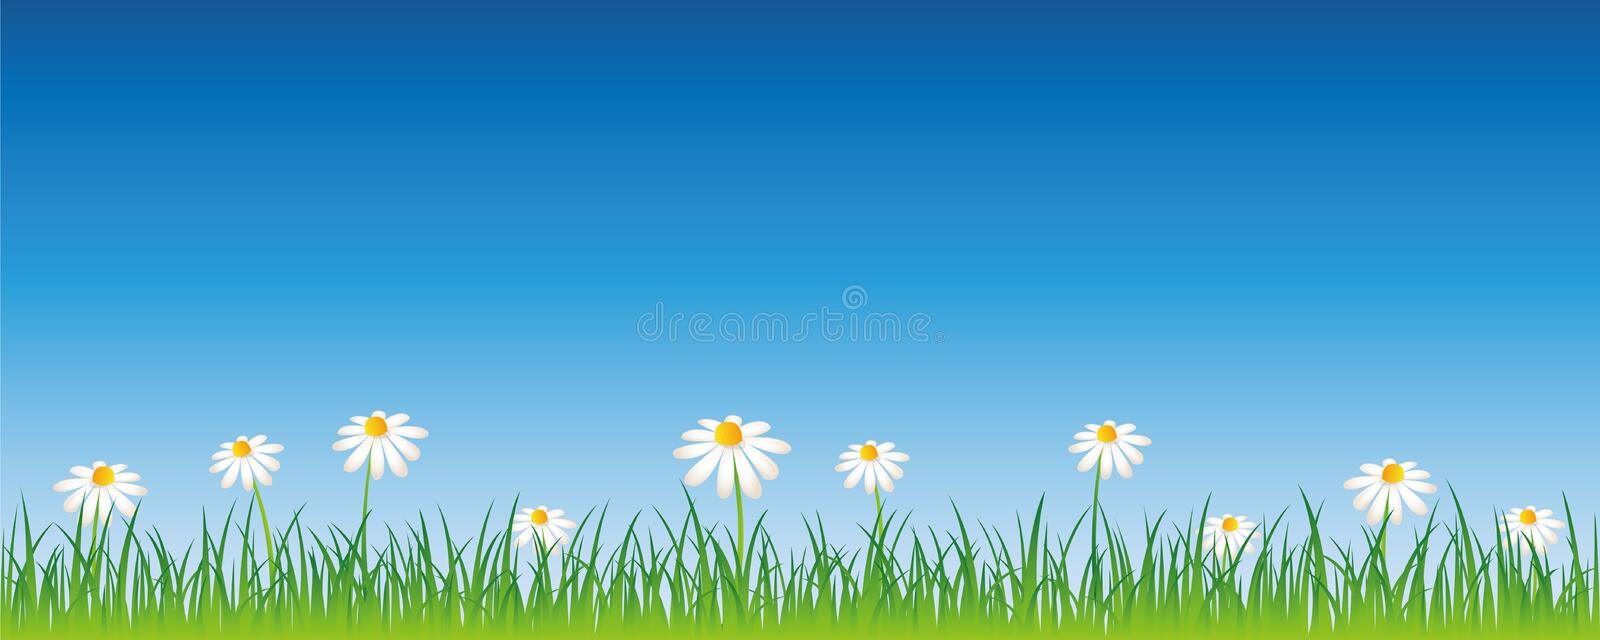 Summer meadow with white daisy flowers banner with copy space. Vector illustration EPS10 vector illustration